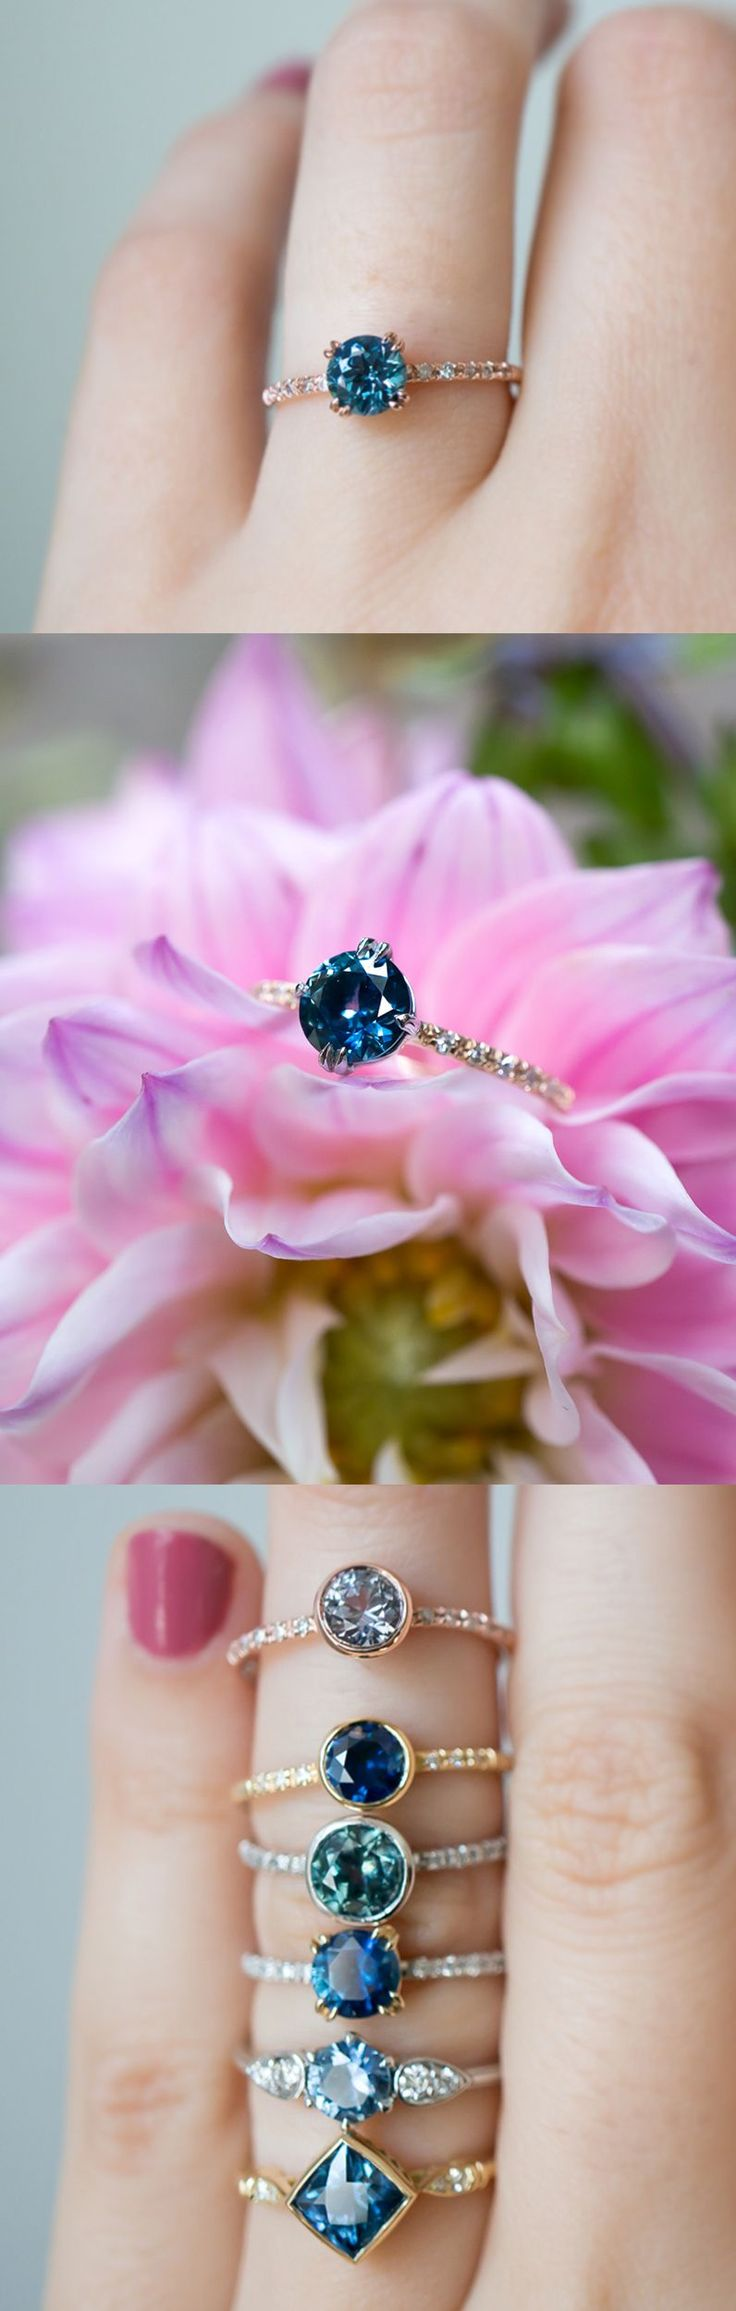 330 best jewelry images on Pinterest | Engagements, Wedding bands ...